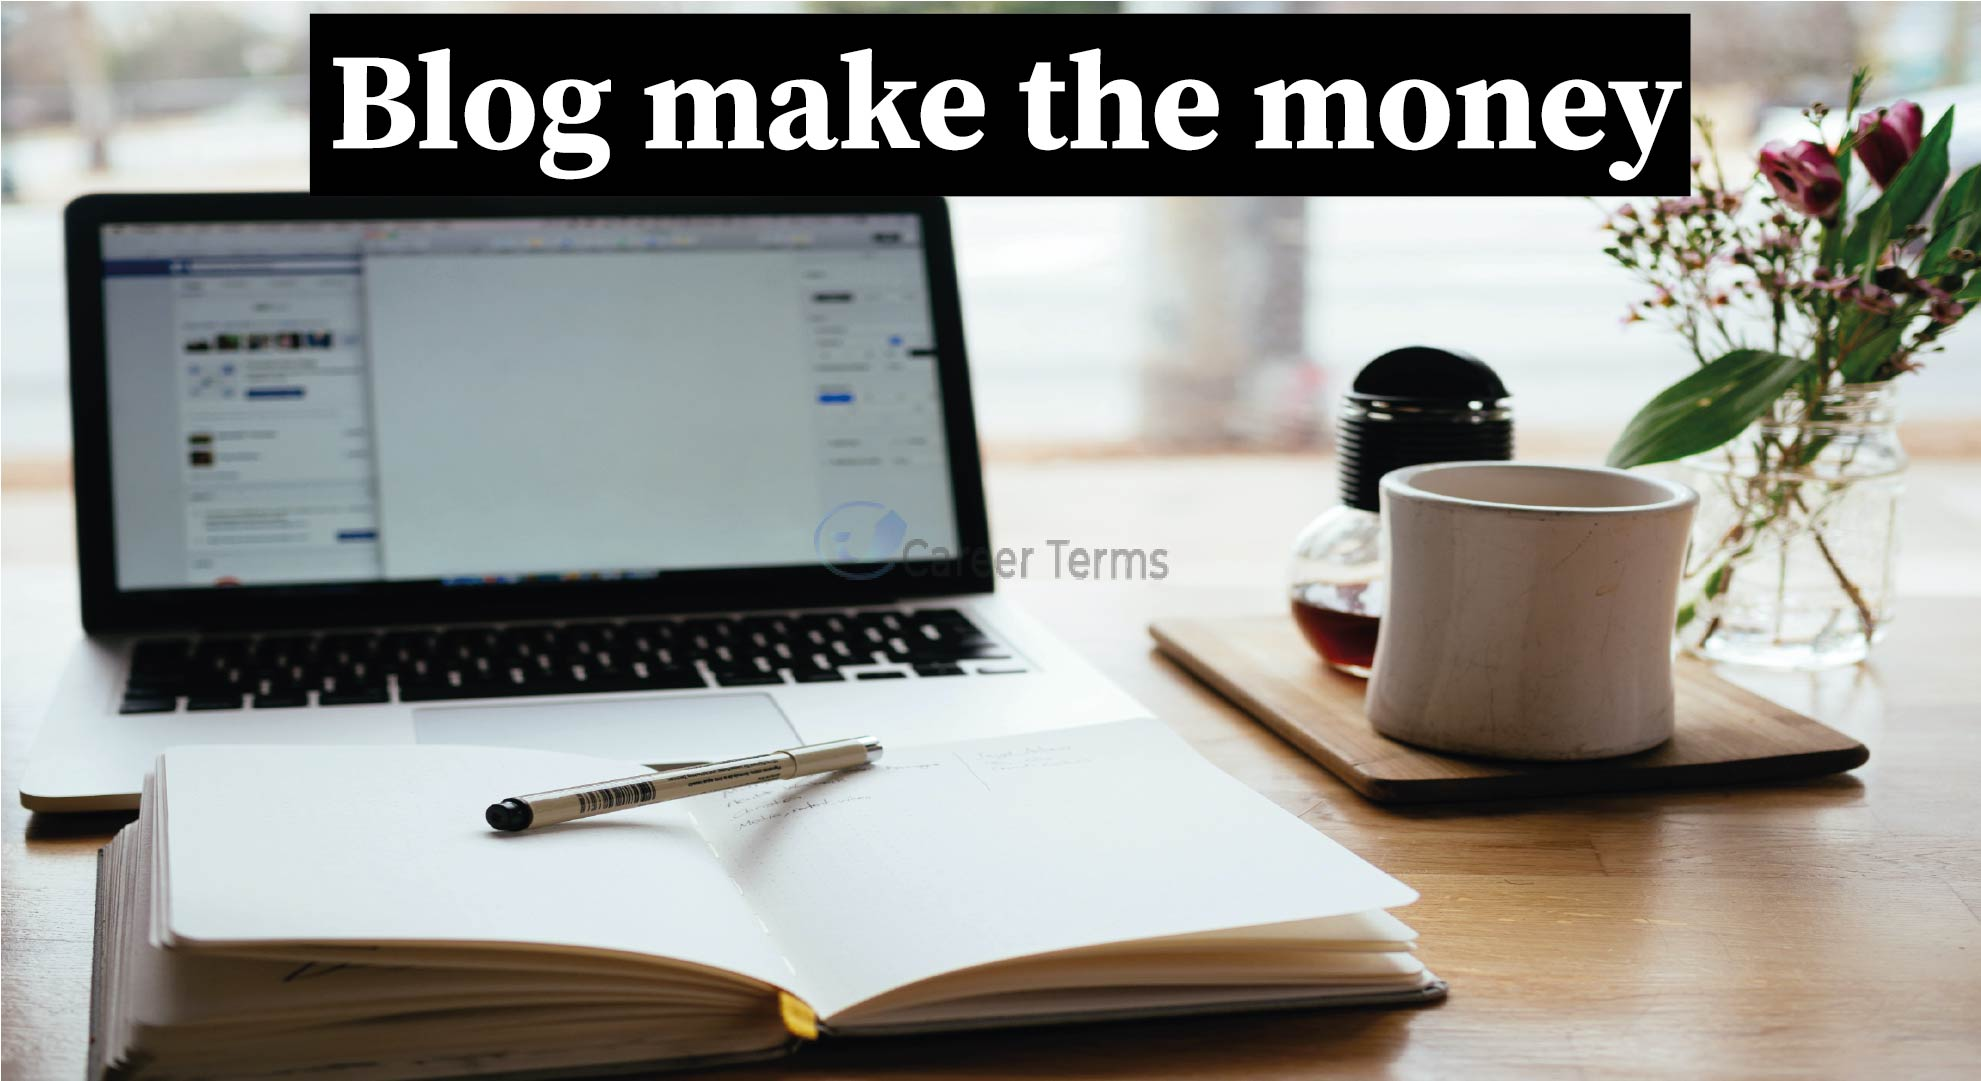 Which type of blogs make the most money